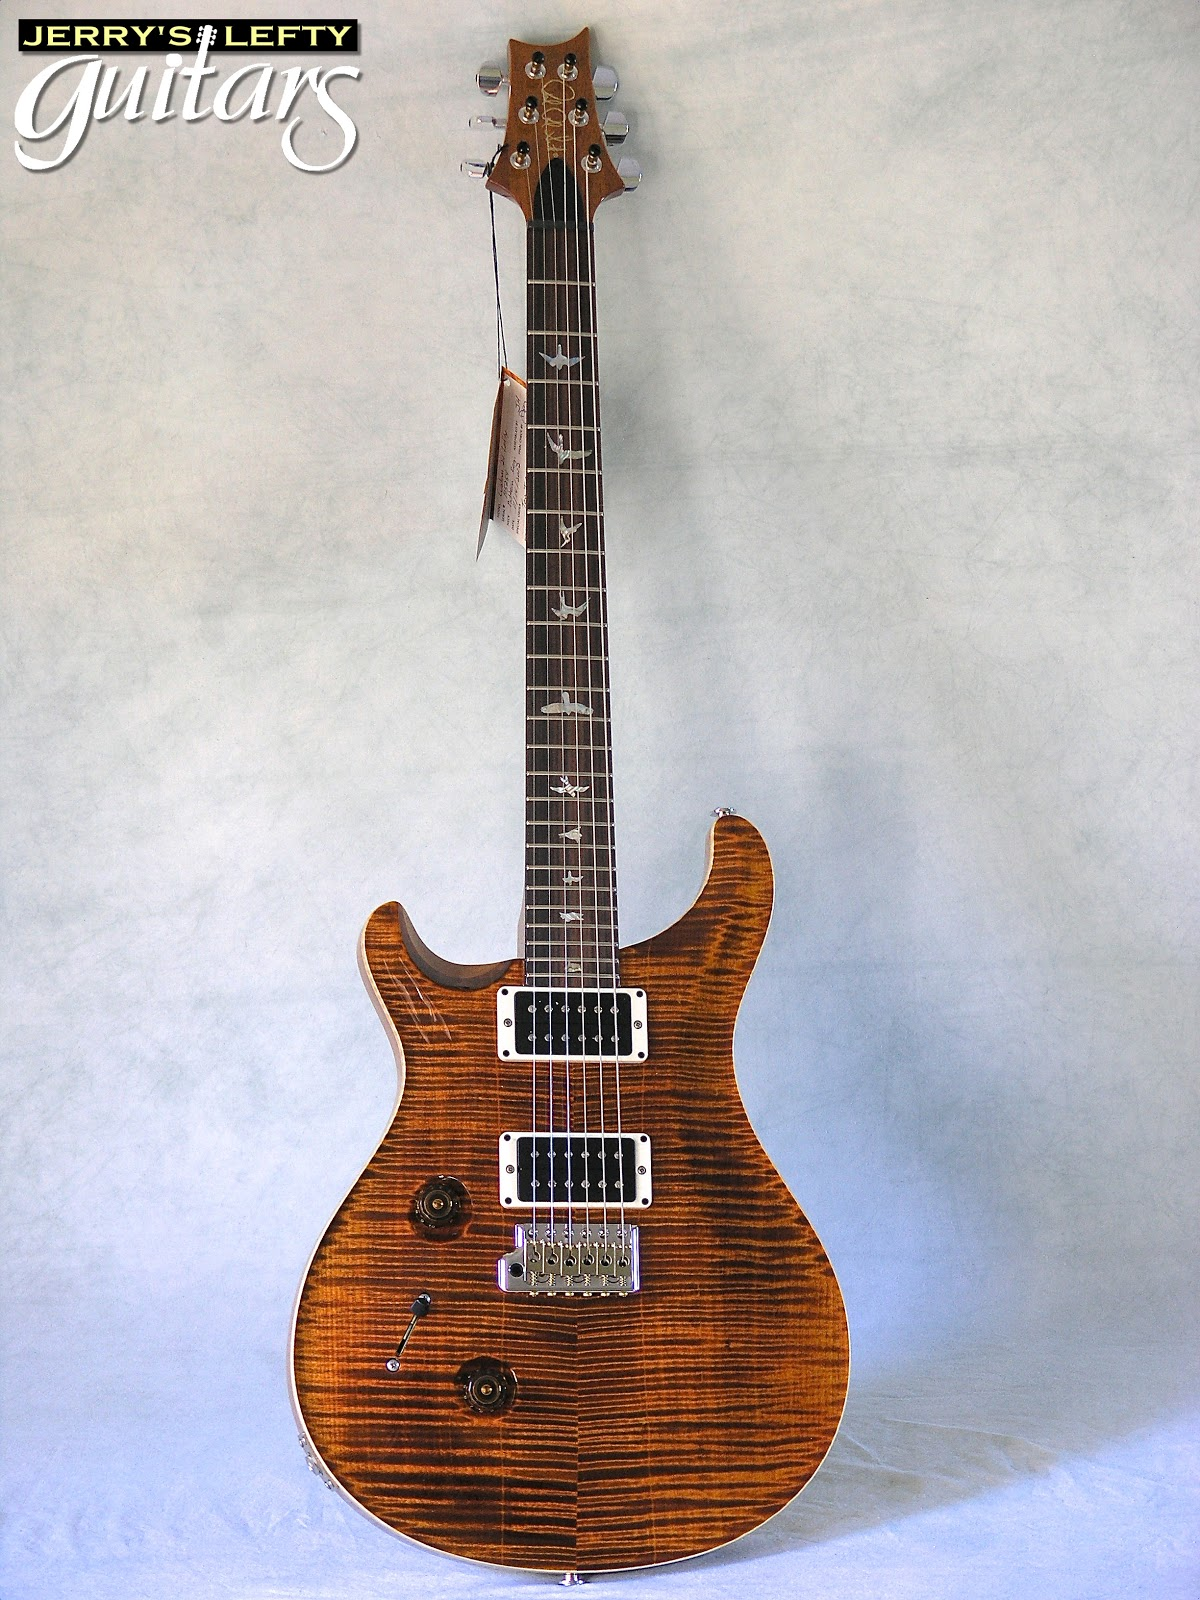 jerry 39 s lefty guitars newest guitar arrivals updated weekly prs custom 24 10 top flame yellow. Black Bedroom Furniture Sets. Home Design Ideas